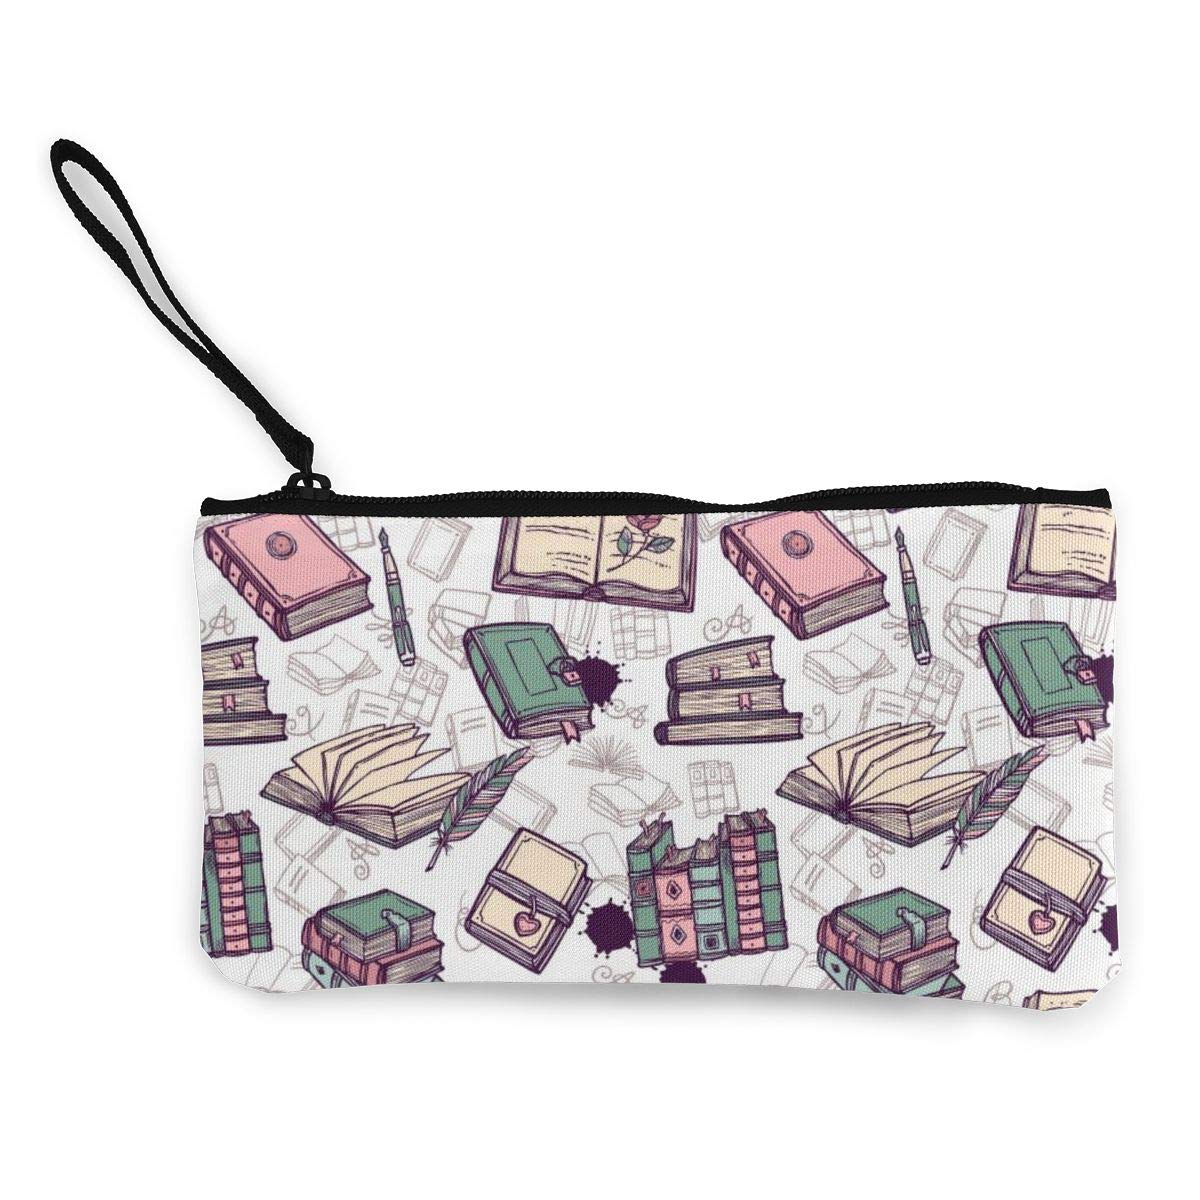 Coin Pouch Books Pattern Canvas Coin Purse Cellphone Card Bag With Handle And Zipper